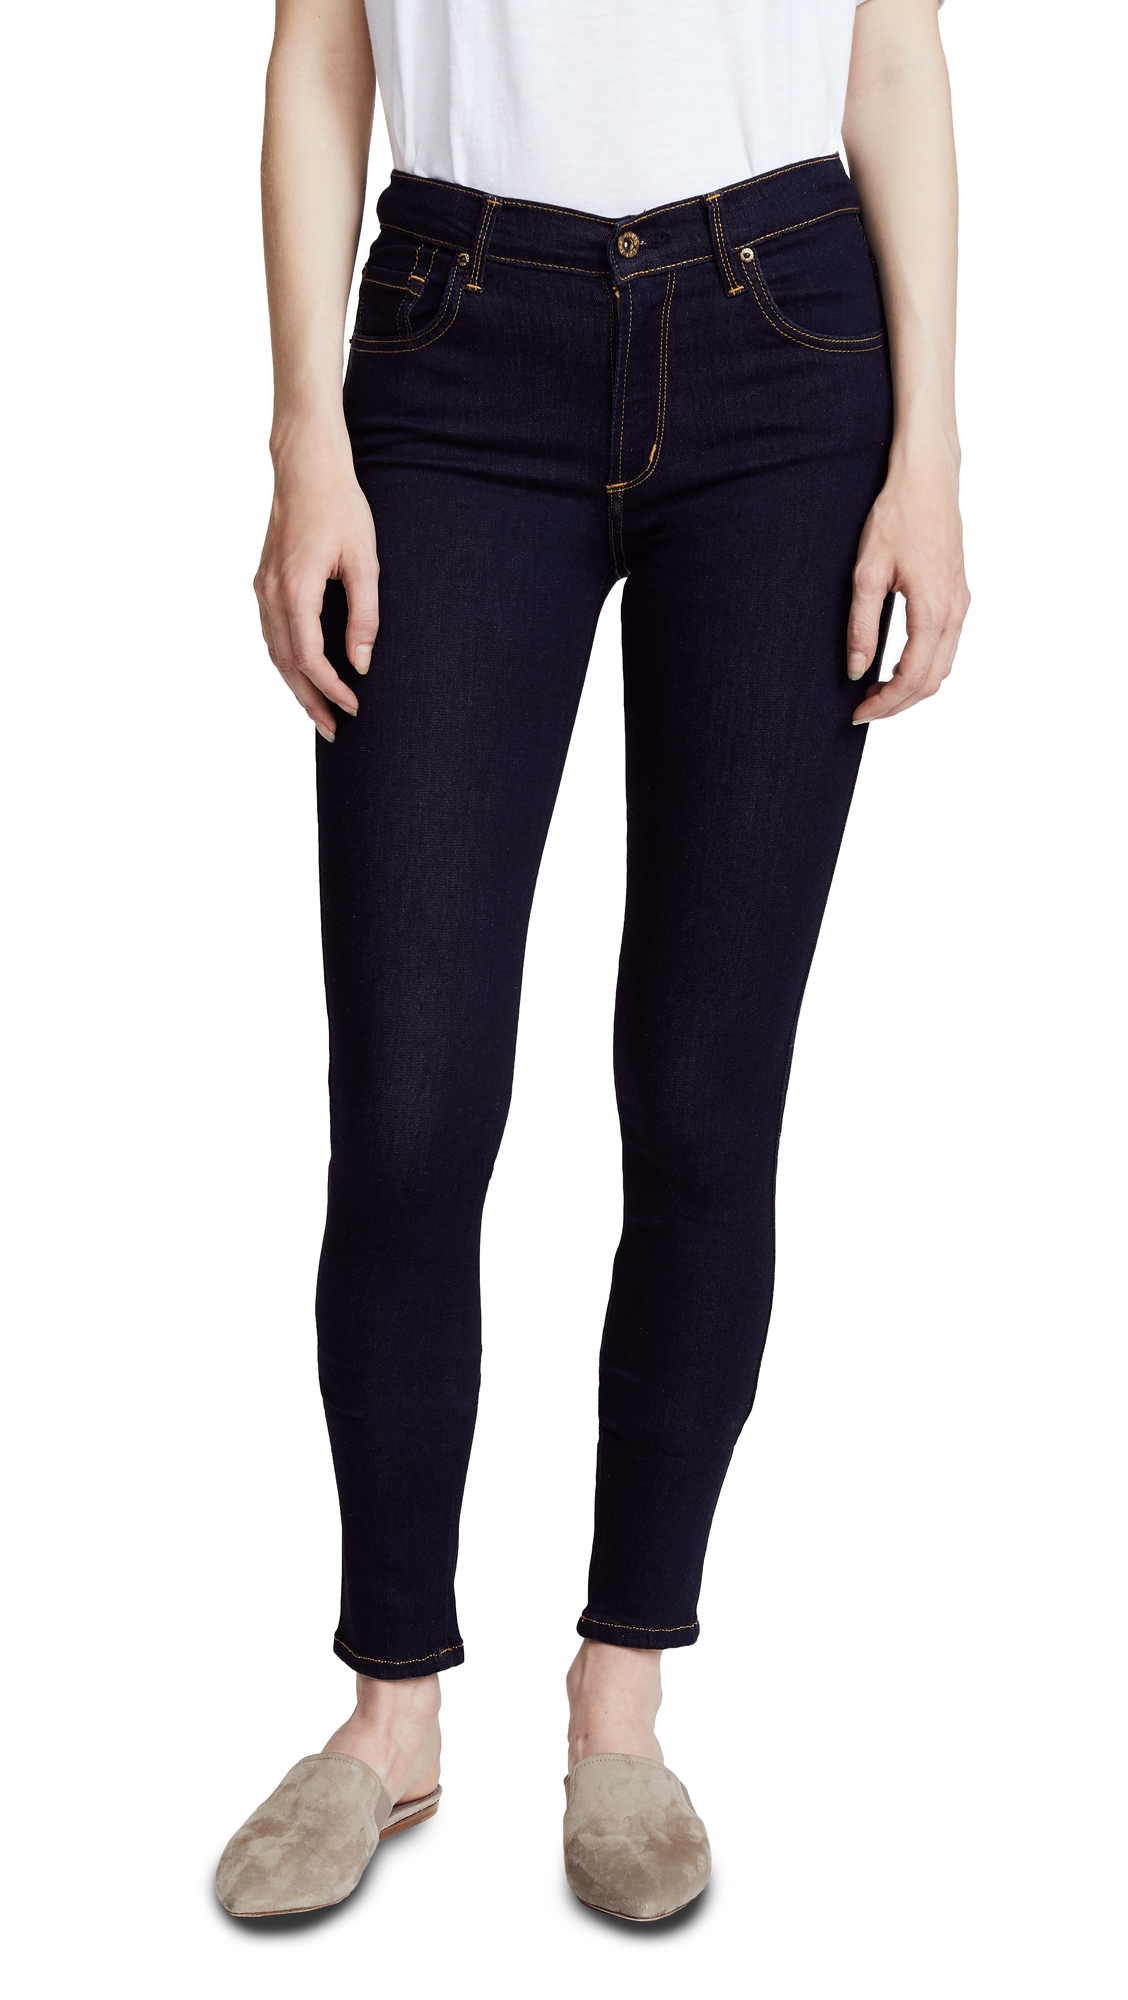 James Jeans Twiggy 5 Pocket Legging Jeans - China Doll